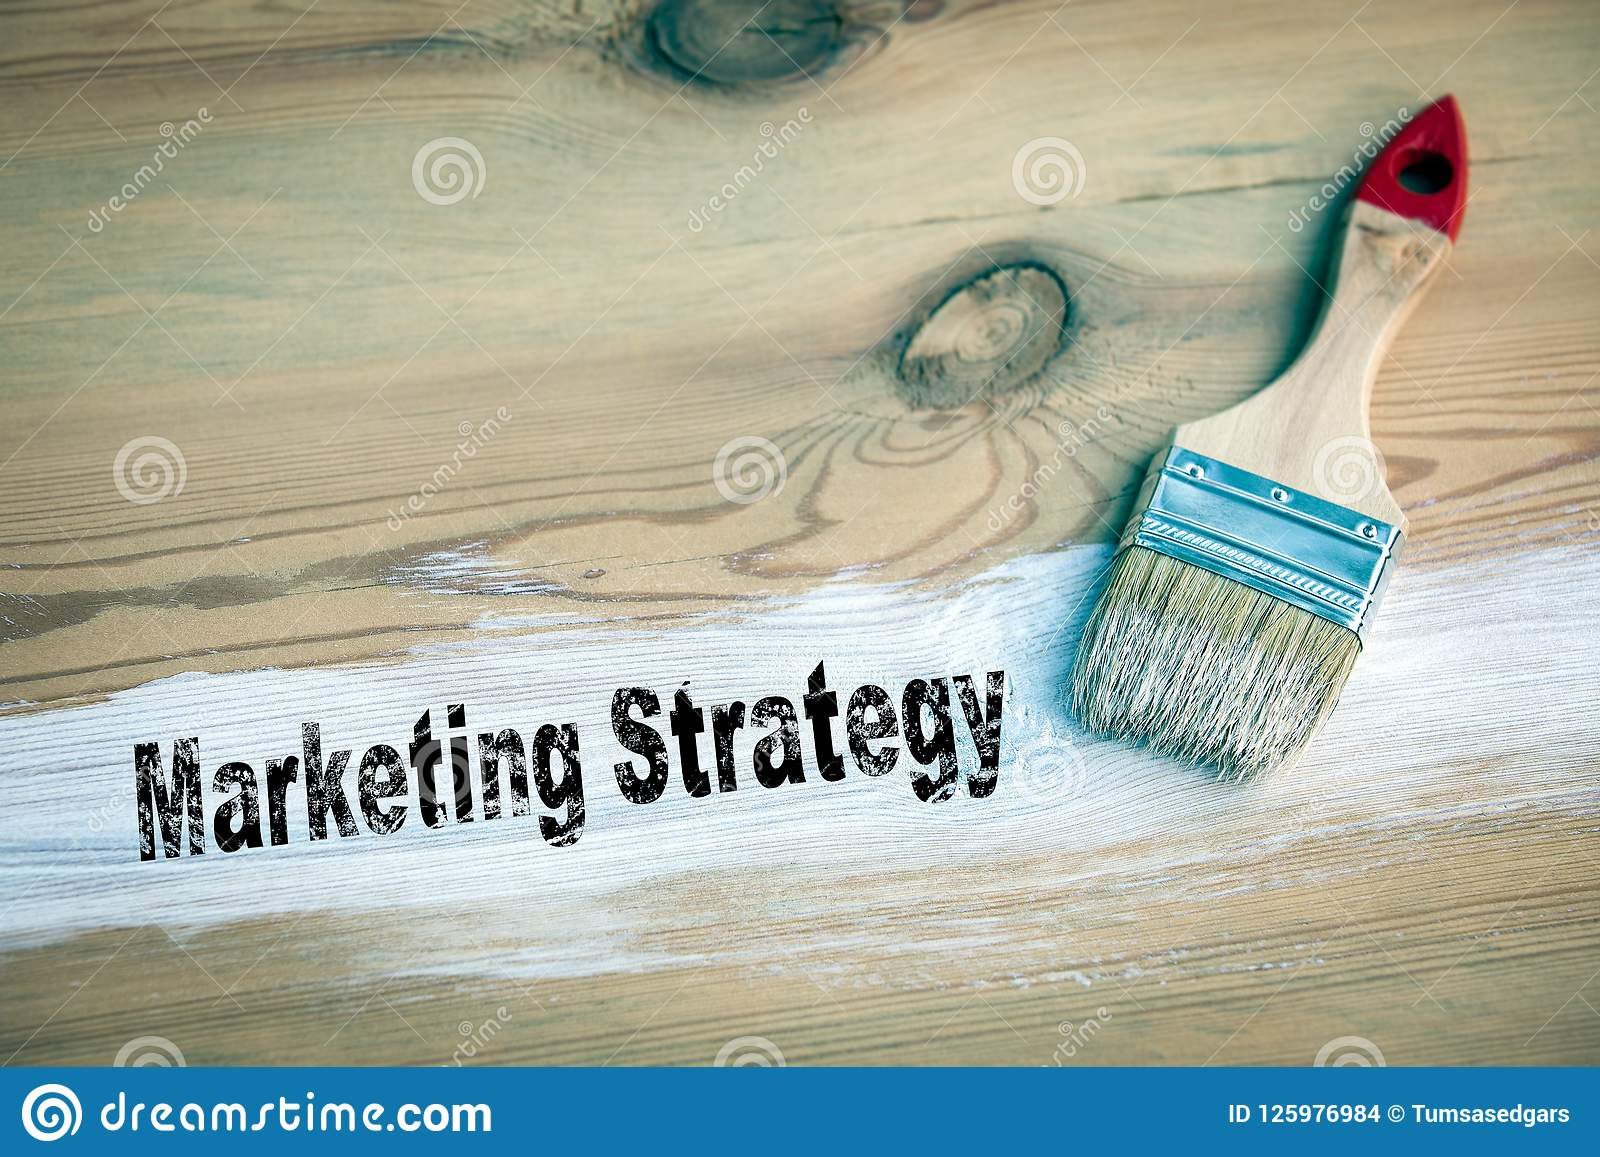 paint marketing strategy